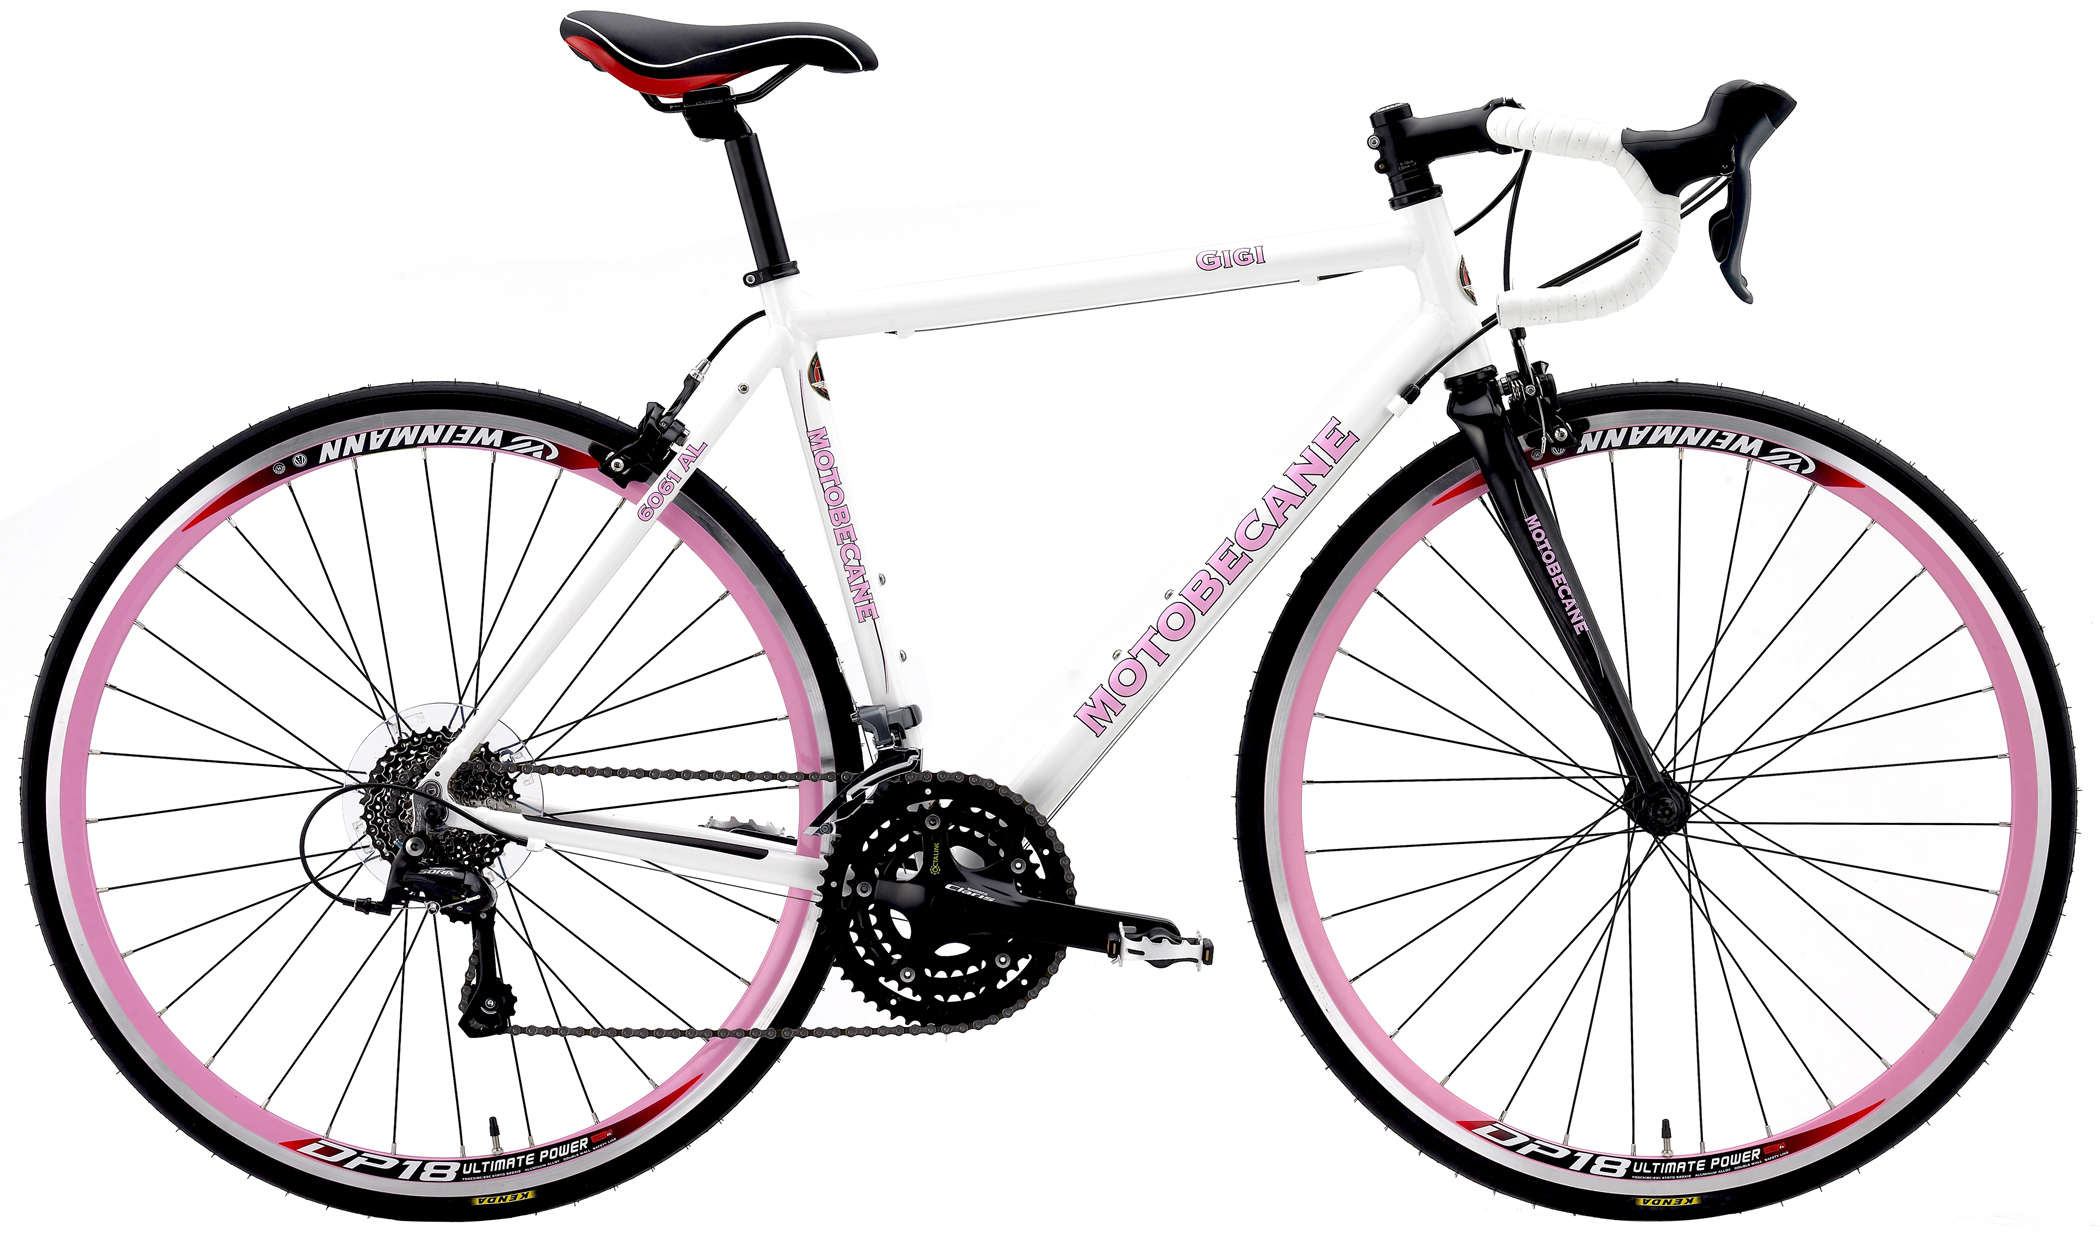 GIGI COMP - WOMEN'S ROAD BIKE w/ CARBON, SHIMANO STI